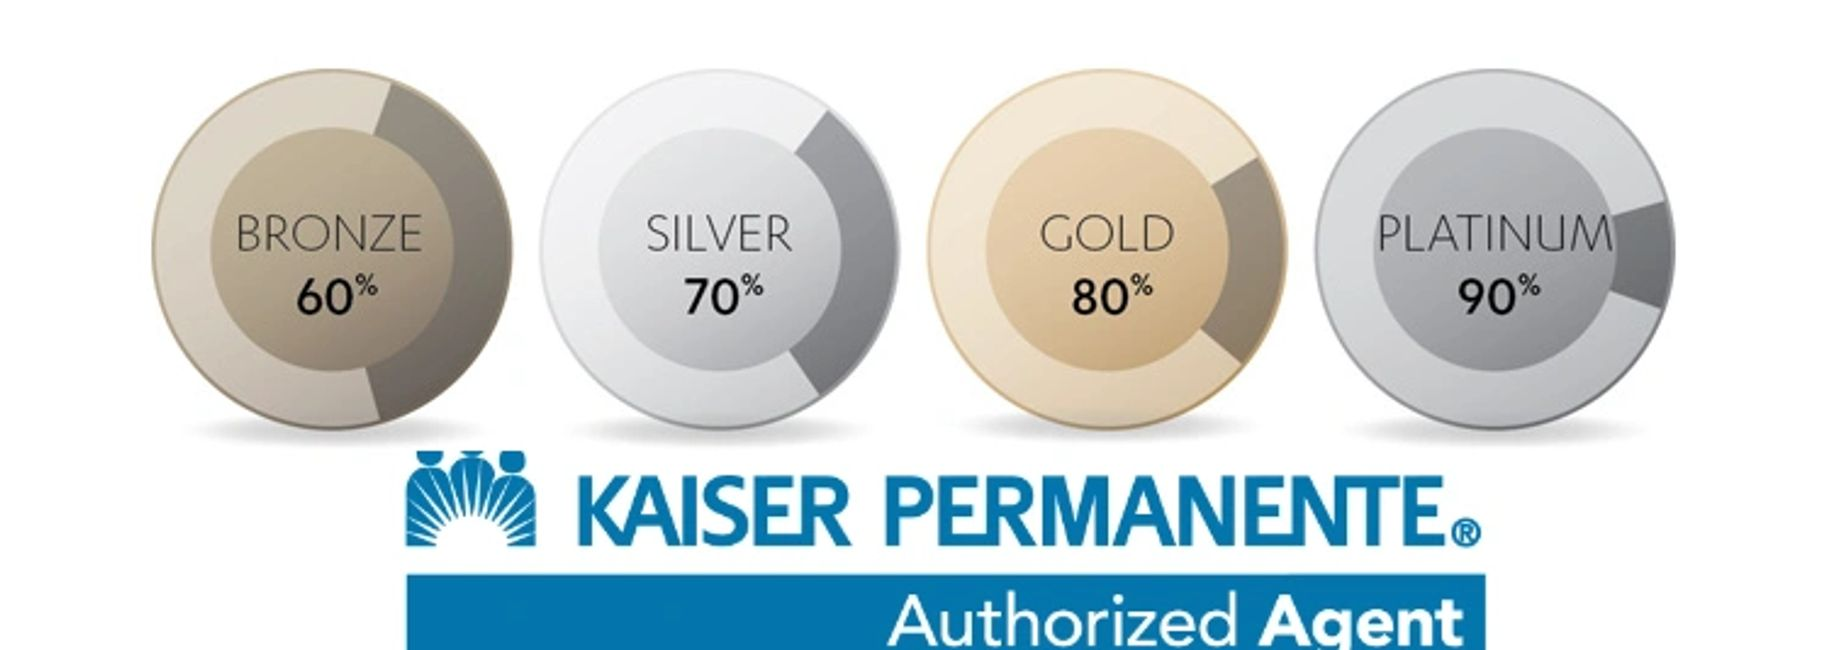 Kaiser Permanente Health & Medical Plans for California bronze silver gold platinum